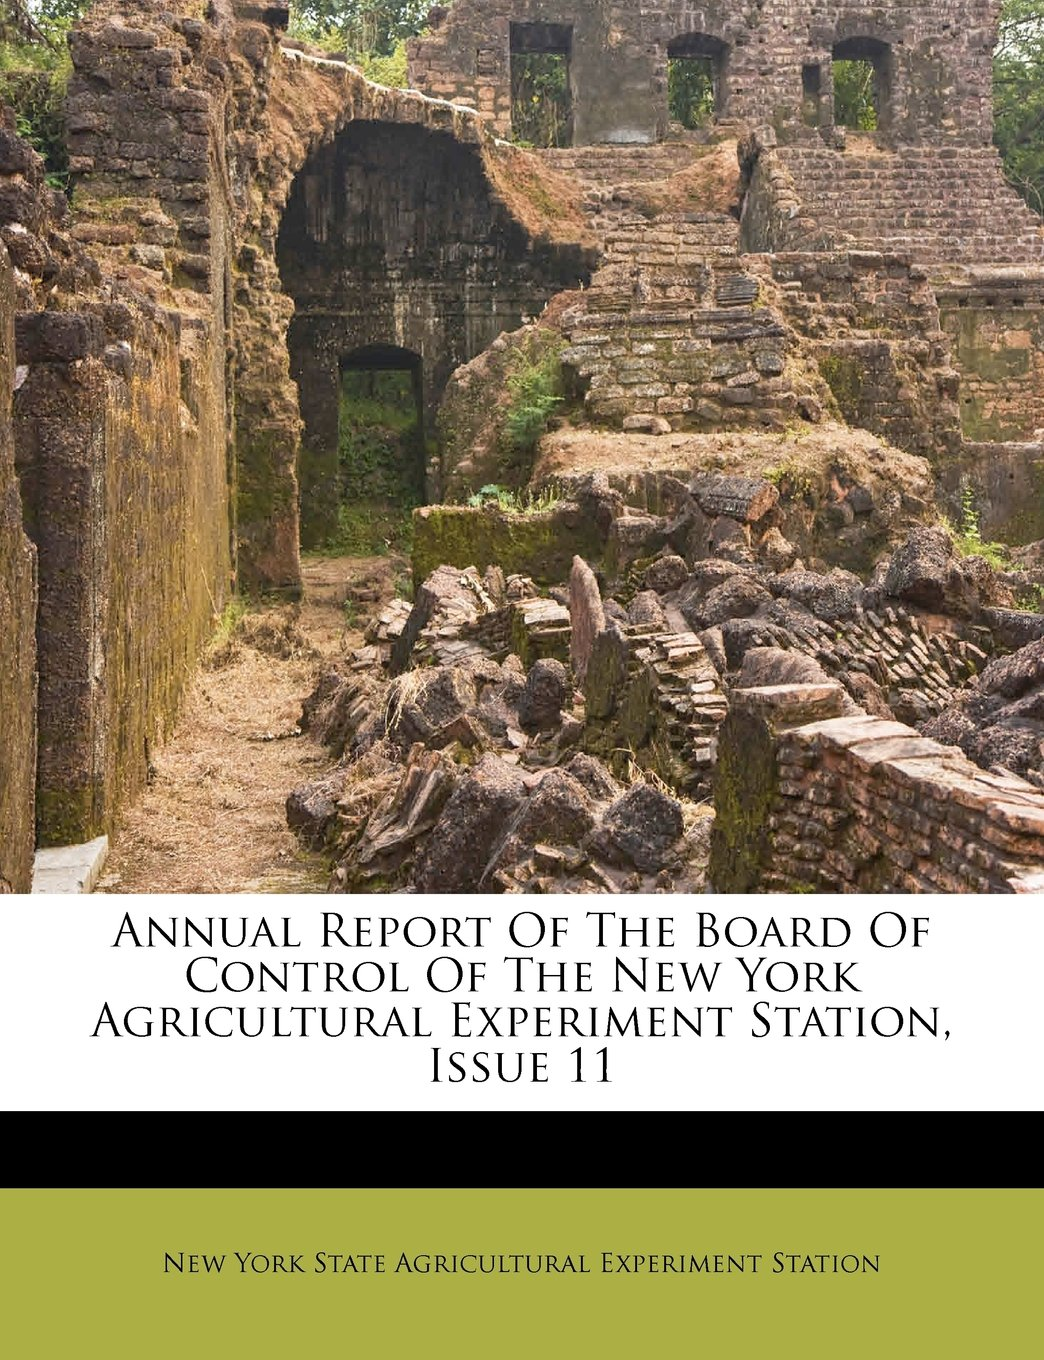 Annual Report Of The Board Of Control Of The New York Agricultural Experiment Station, Issue 11 PDF